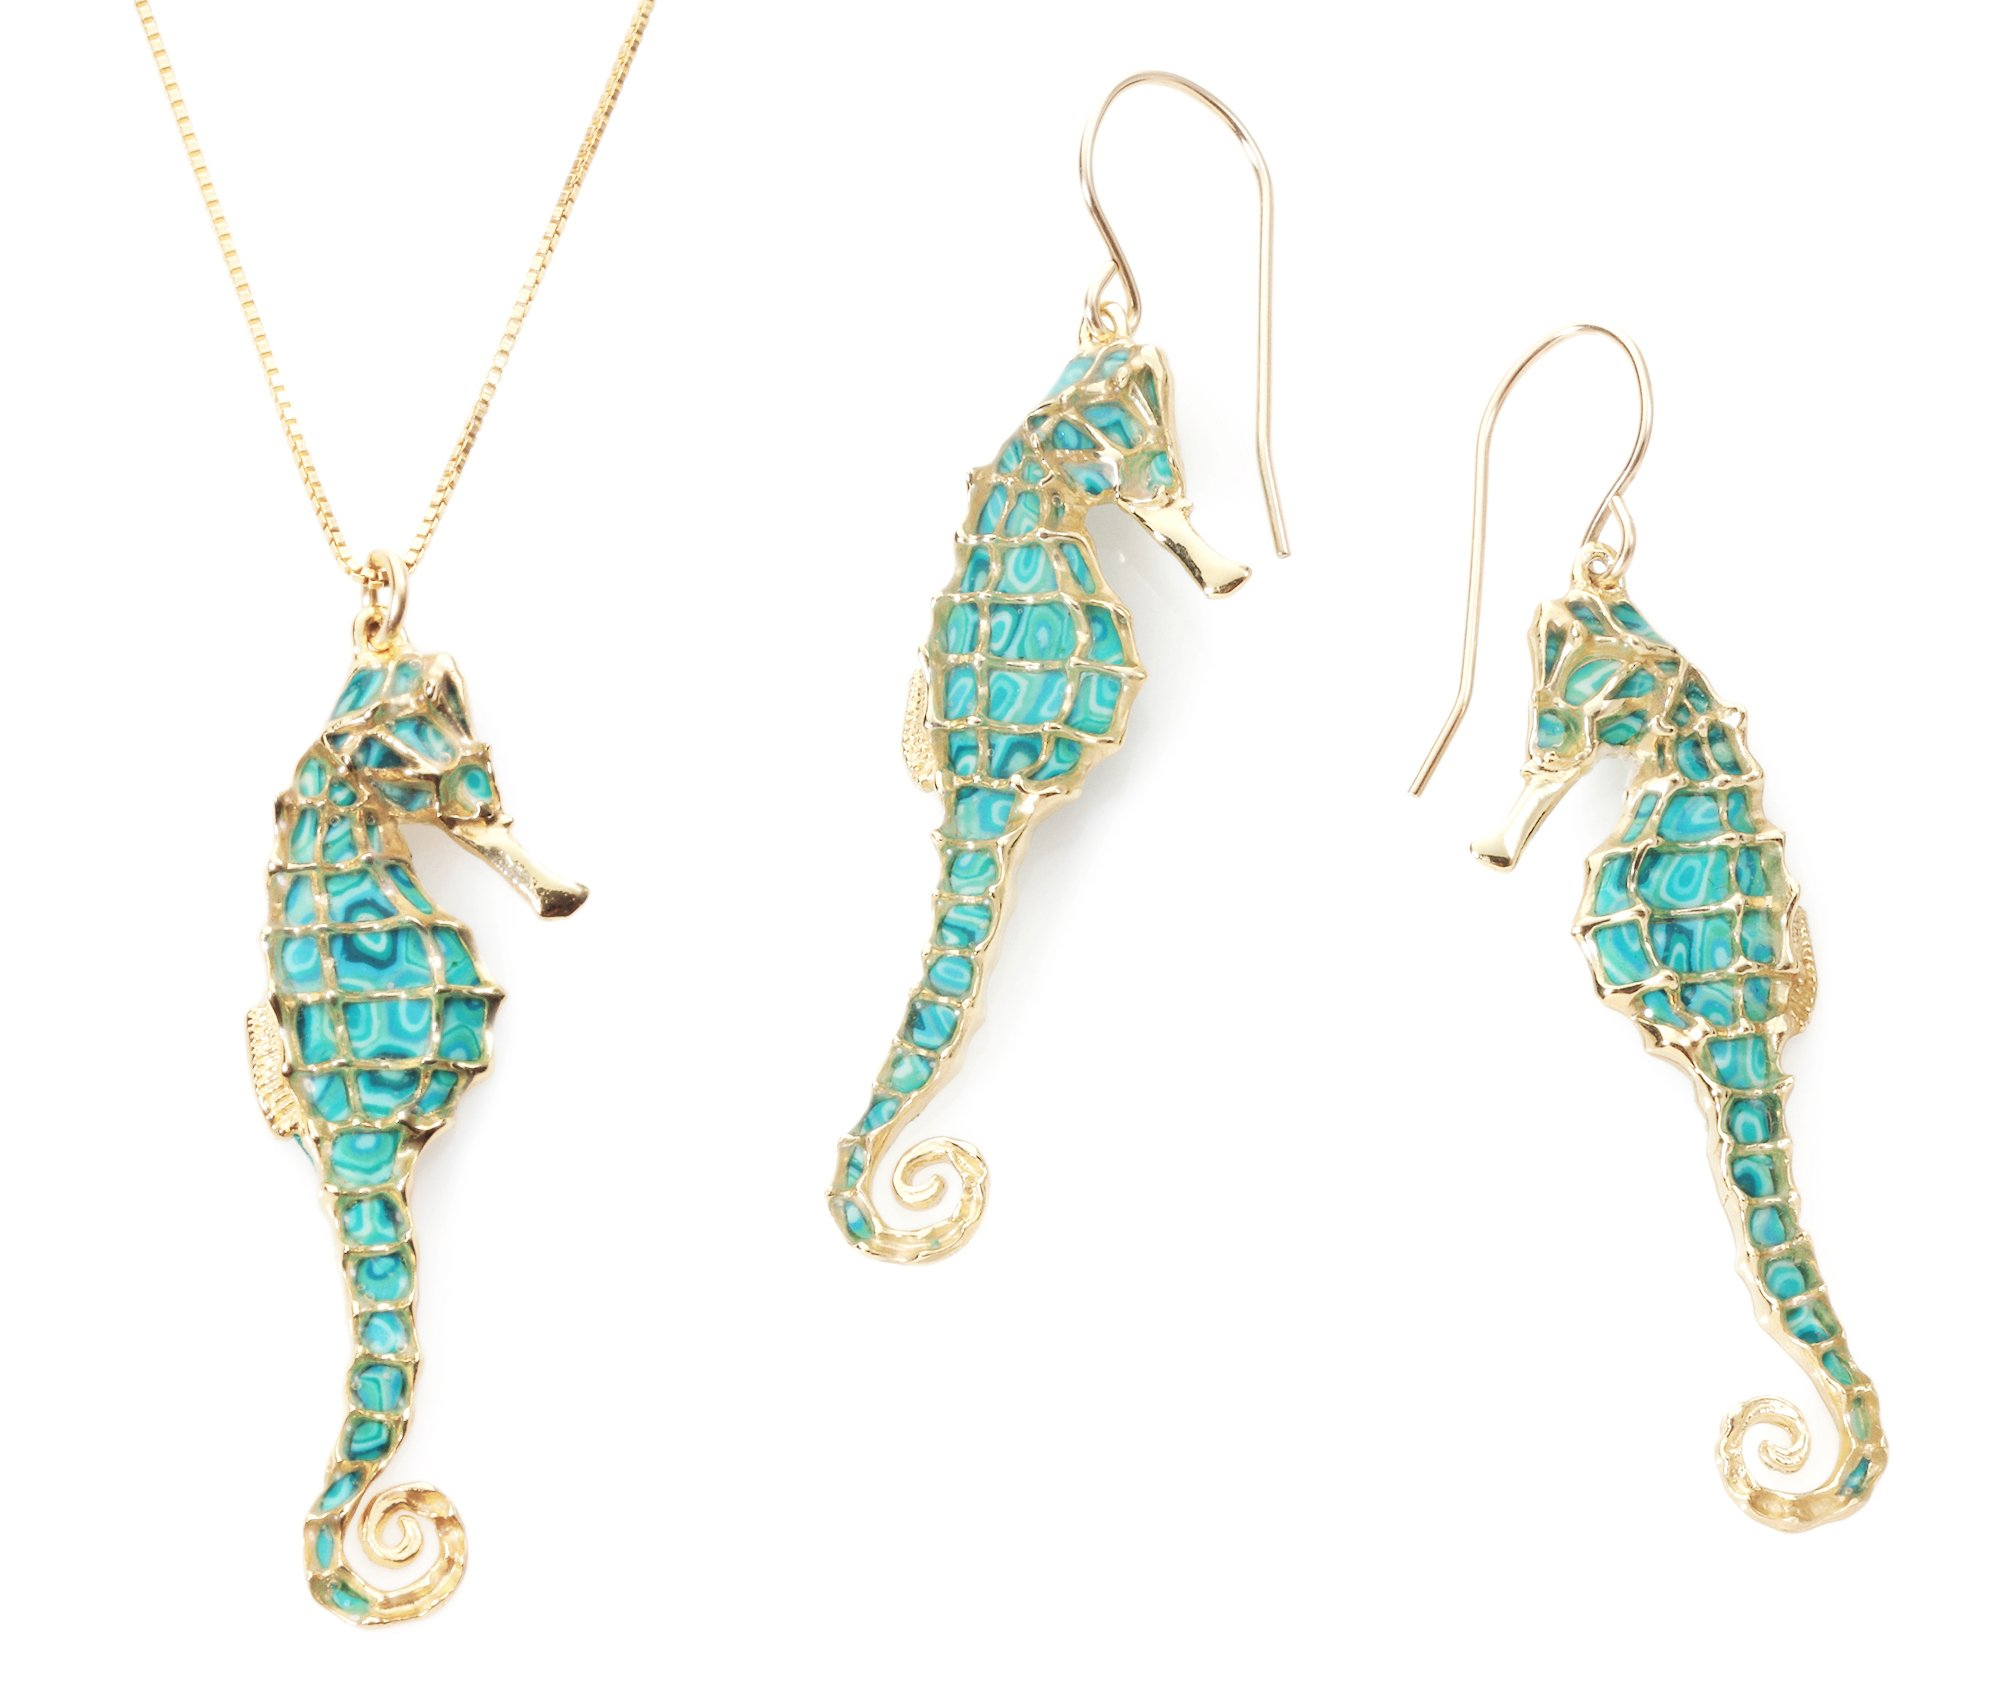 Gold Plated Sterling Silver Seahorse Necklace Pendant and Earrings Sea Green Polymer Clay Handmade Jewelry Set, 16.5'' Gold filled Chain